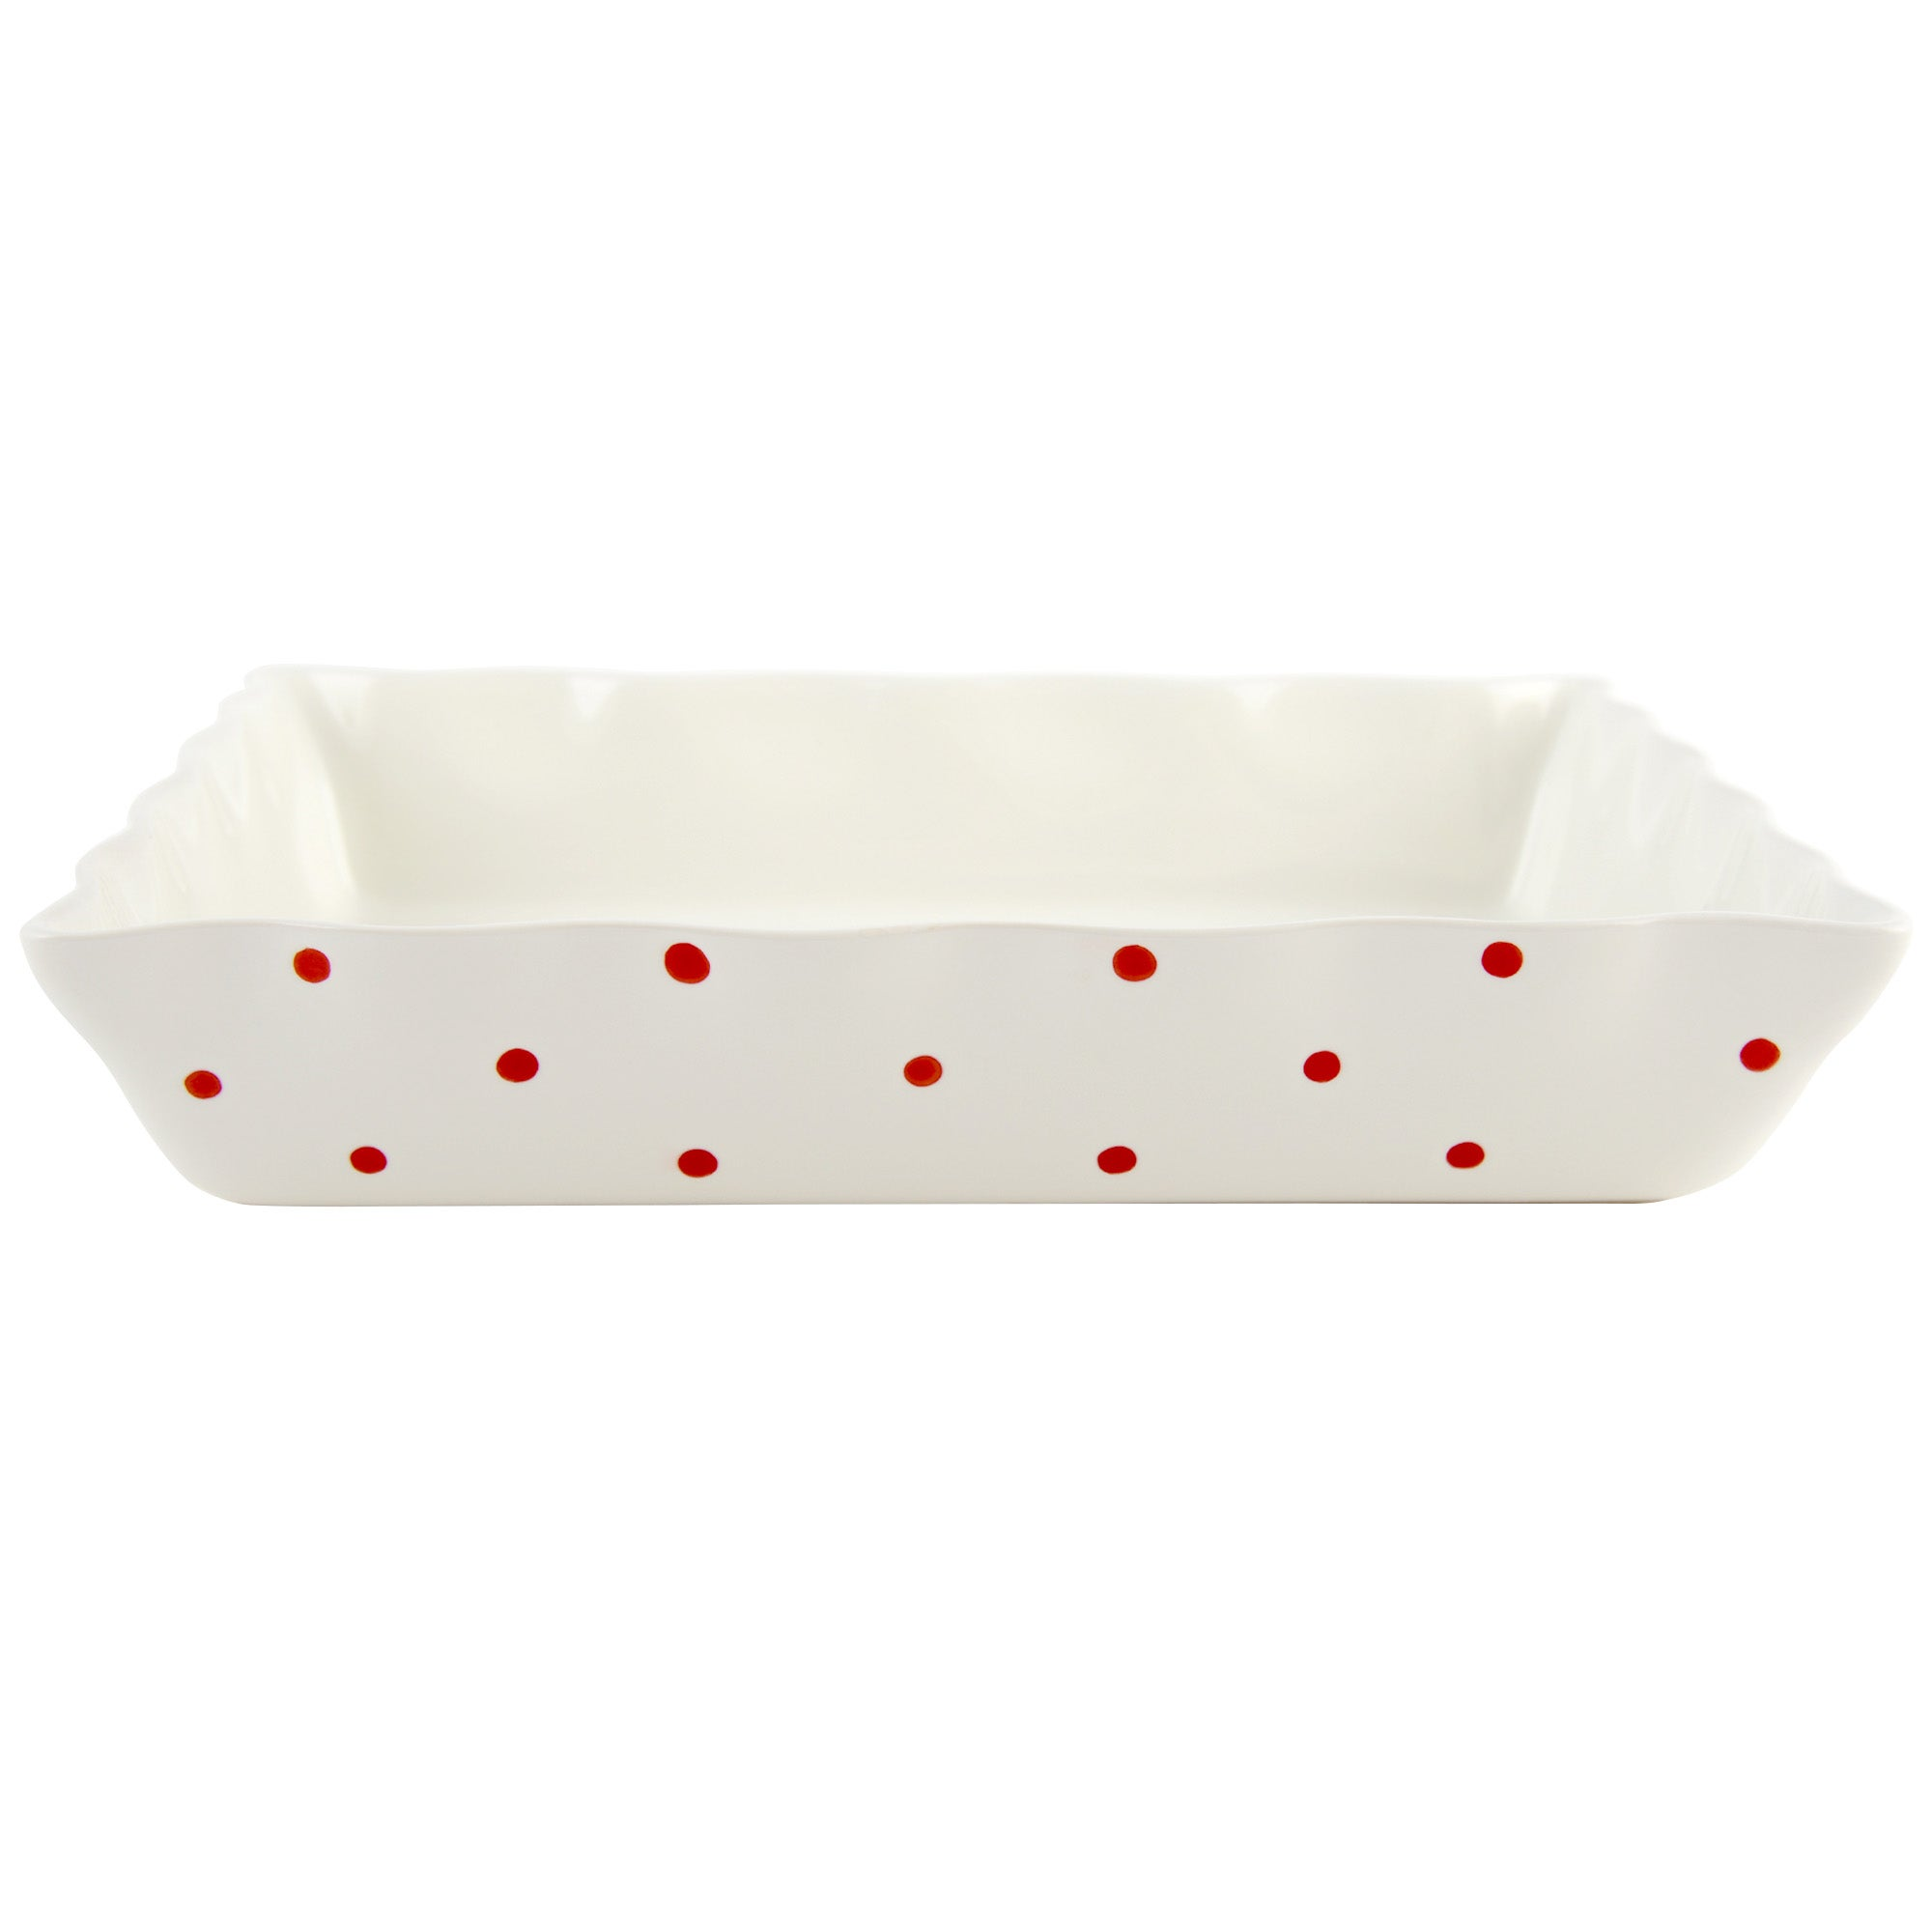 Red Farmstead Collection Rectangular Dotty Roaster